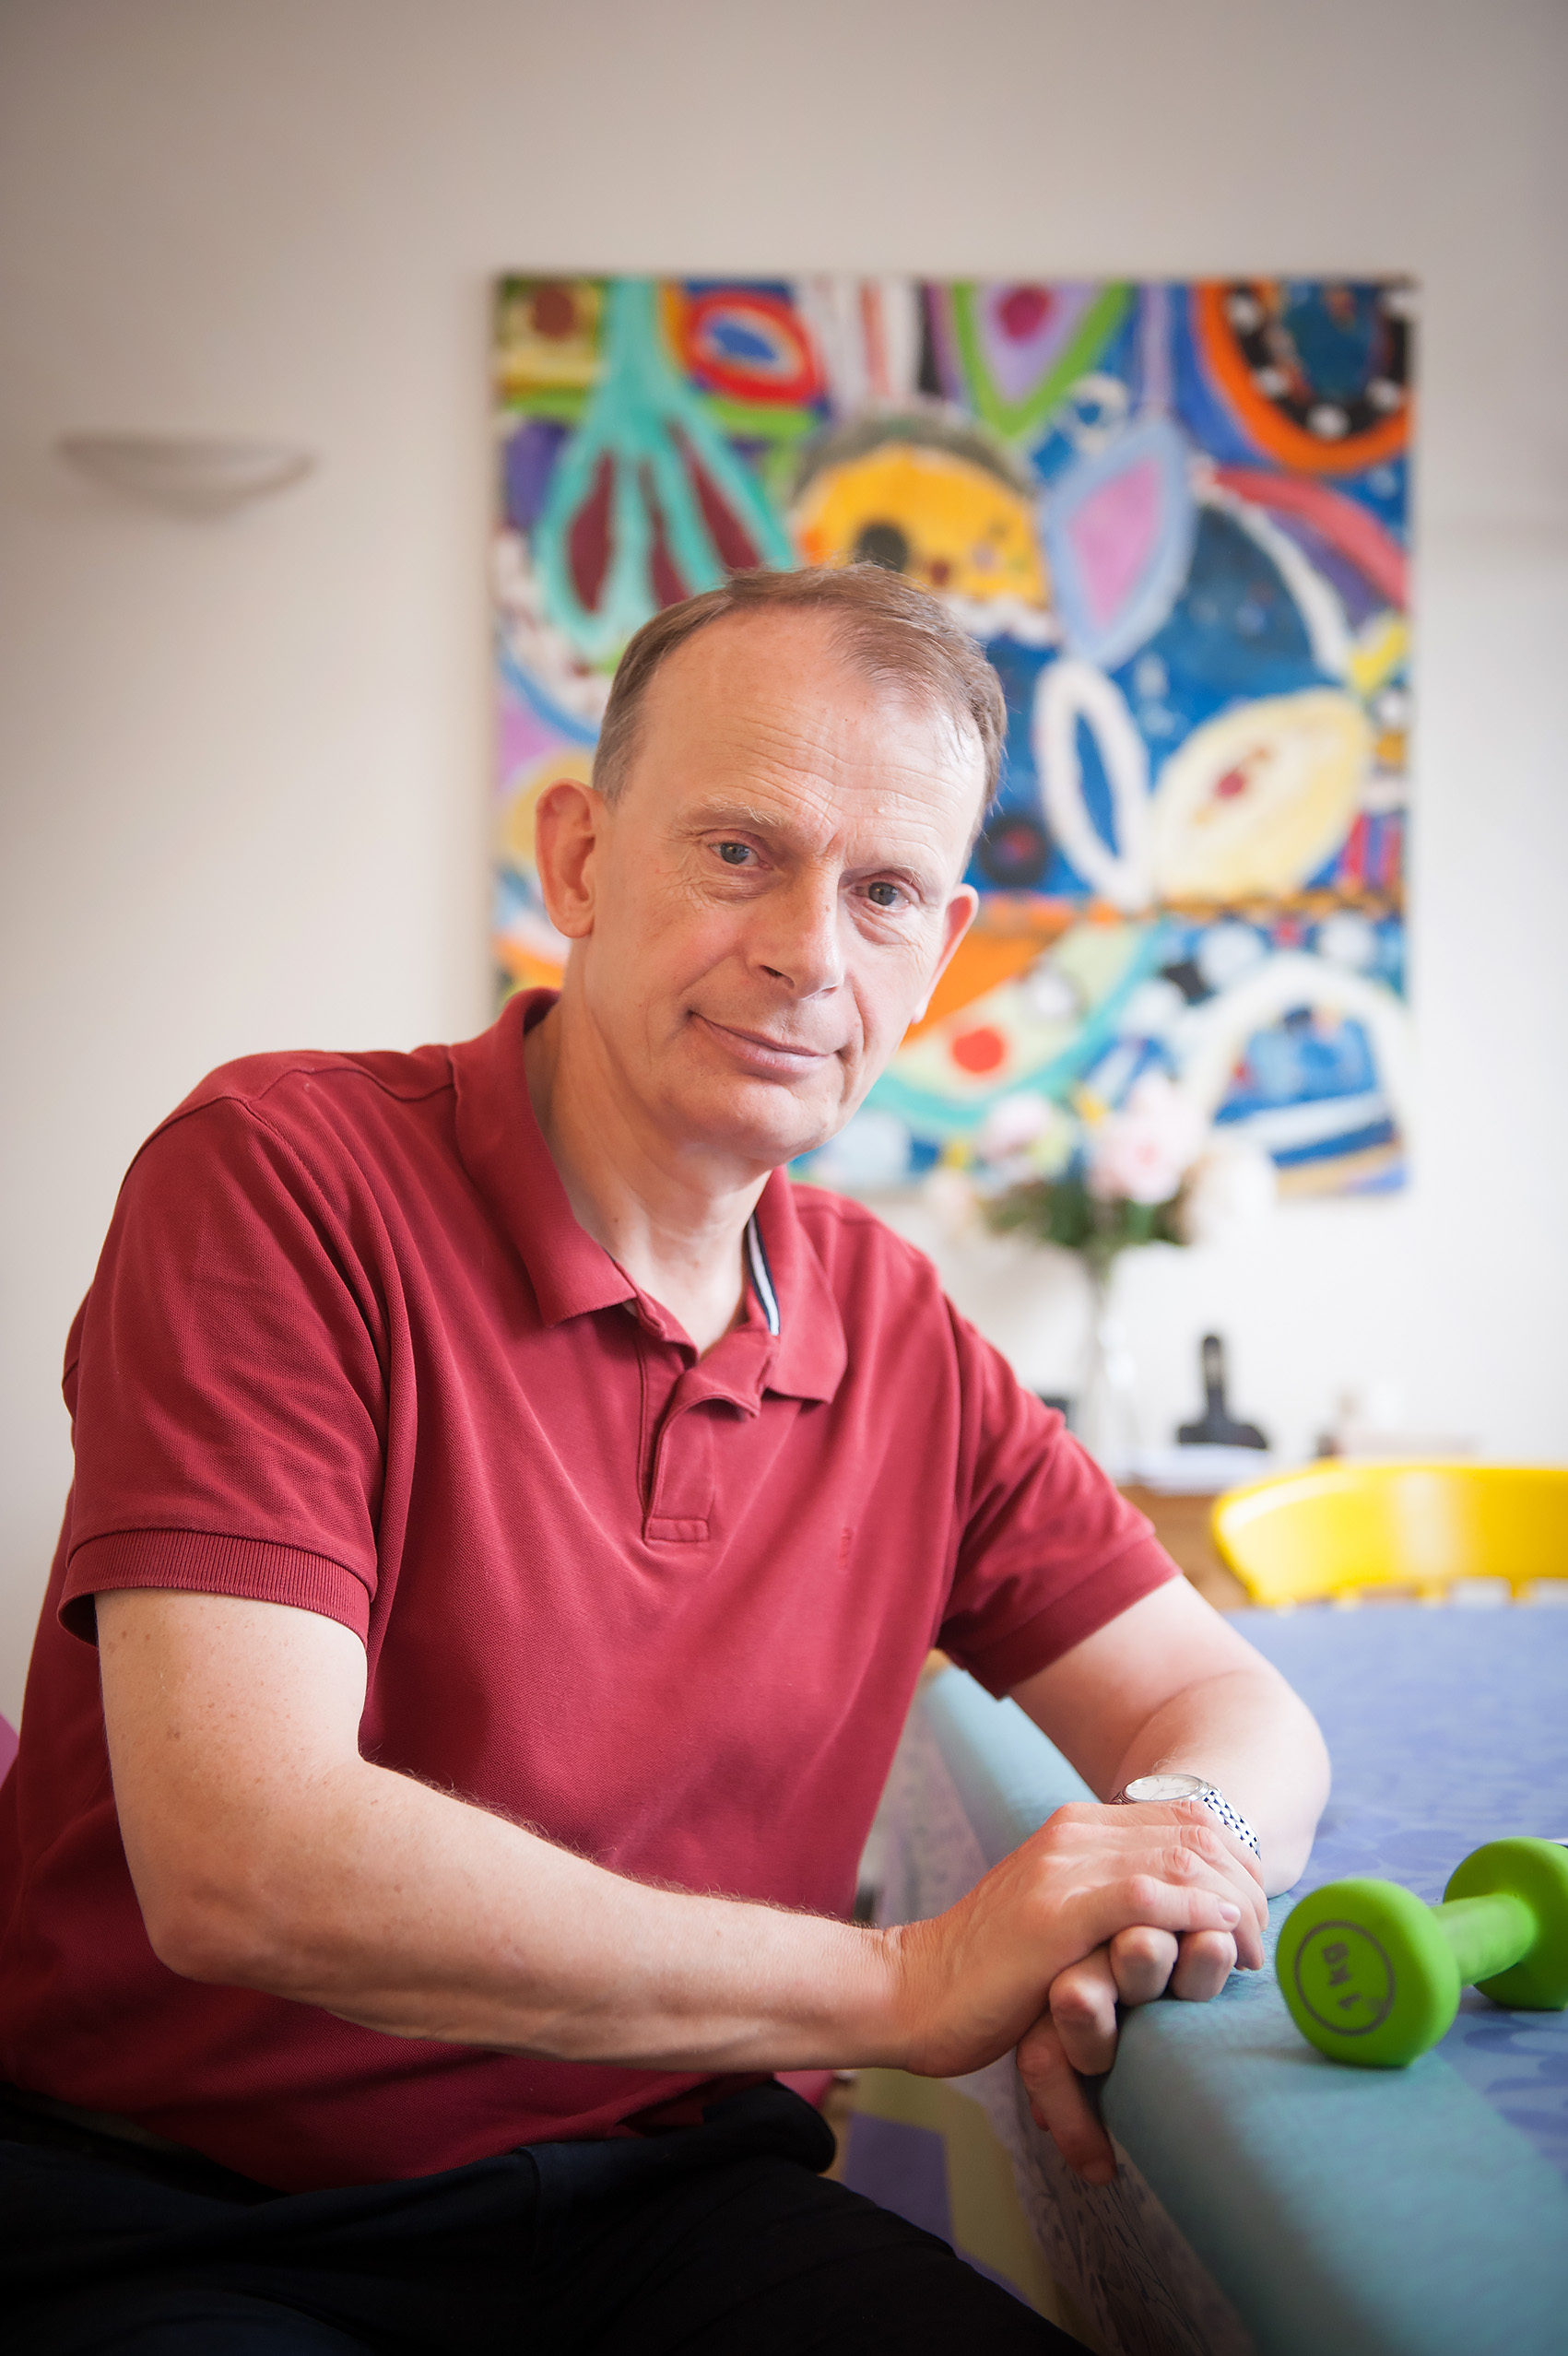 Portrait of Andrew Marr sitting in front of a abstract painting